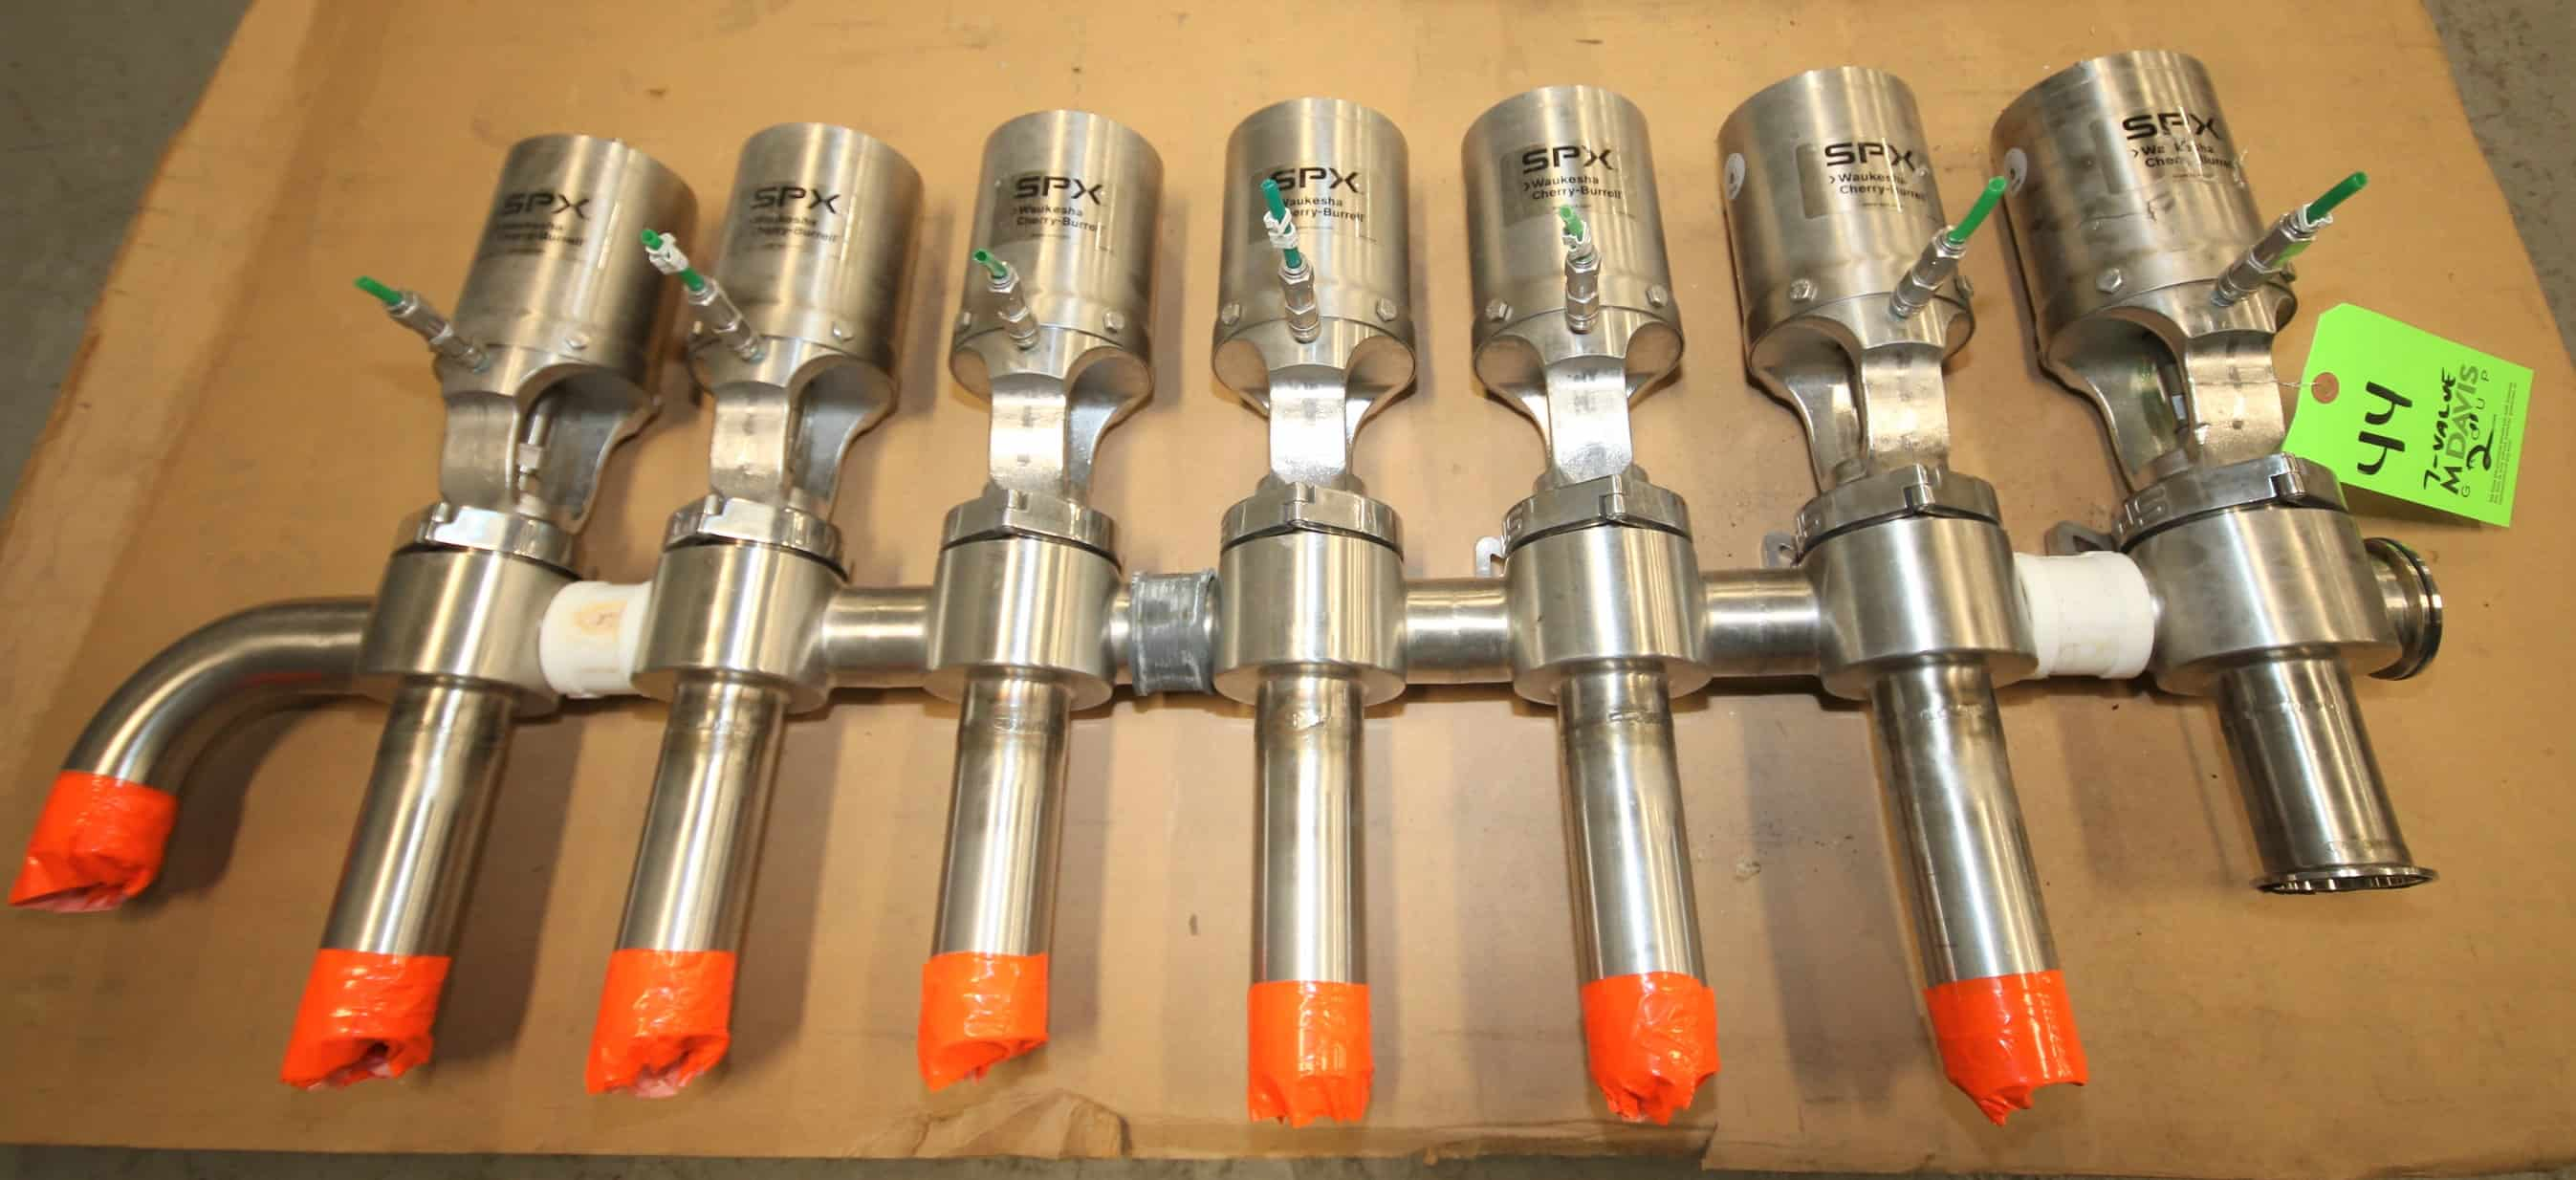 "Valve SPX WCB 2"" S/S Air Valve Manifold / Cluster with P/N W6100019 Valves"